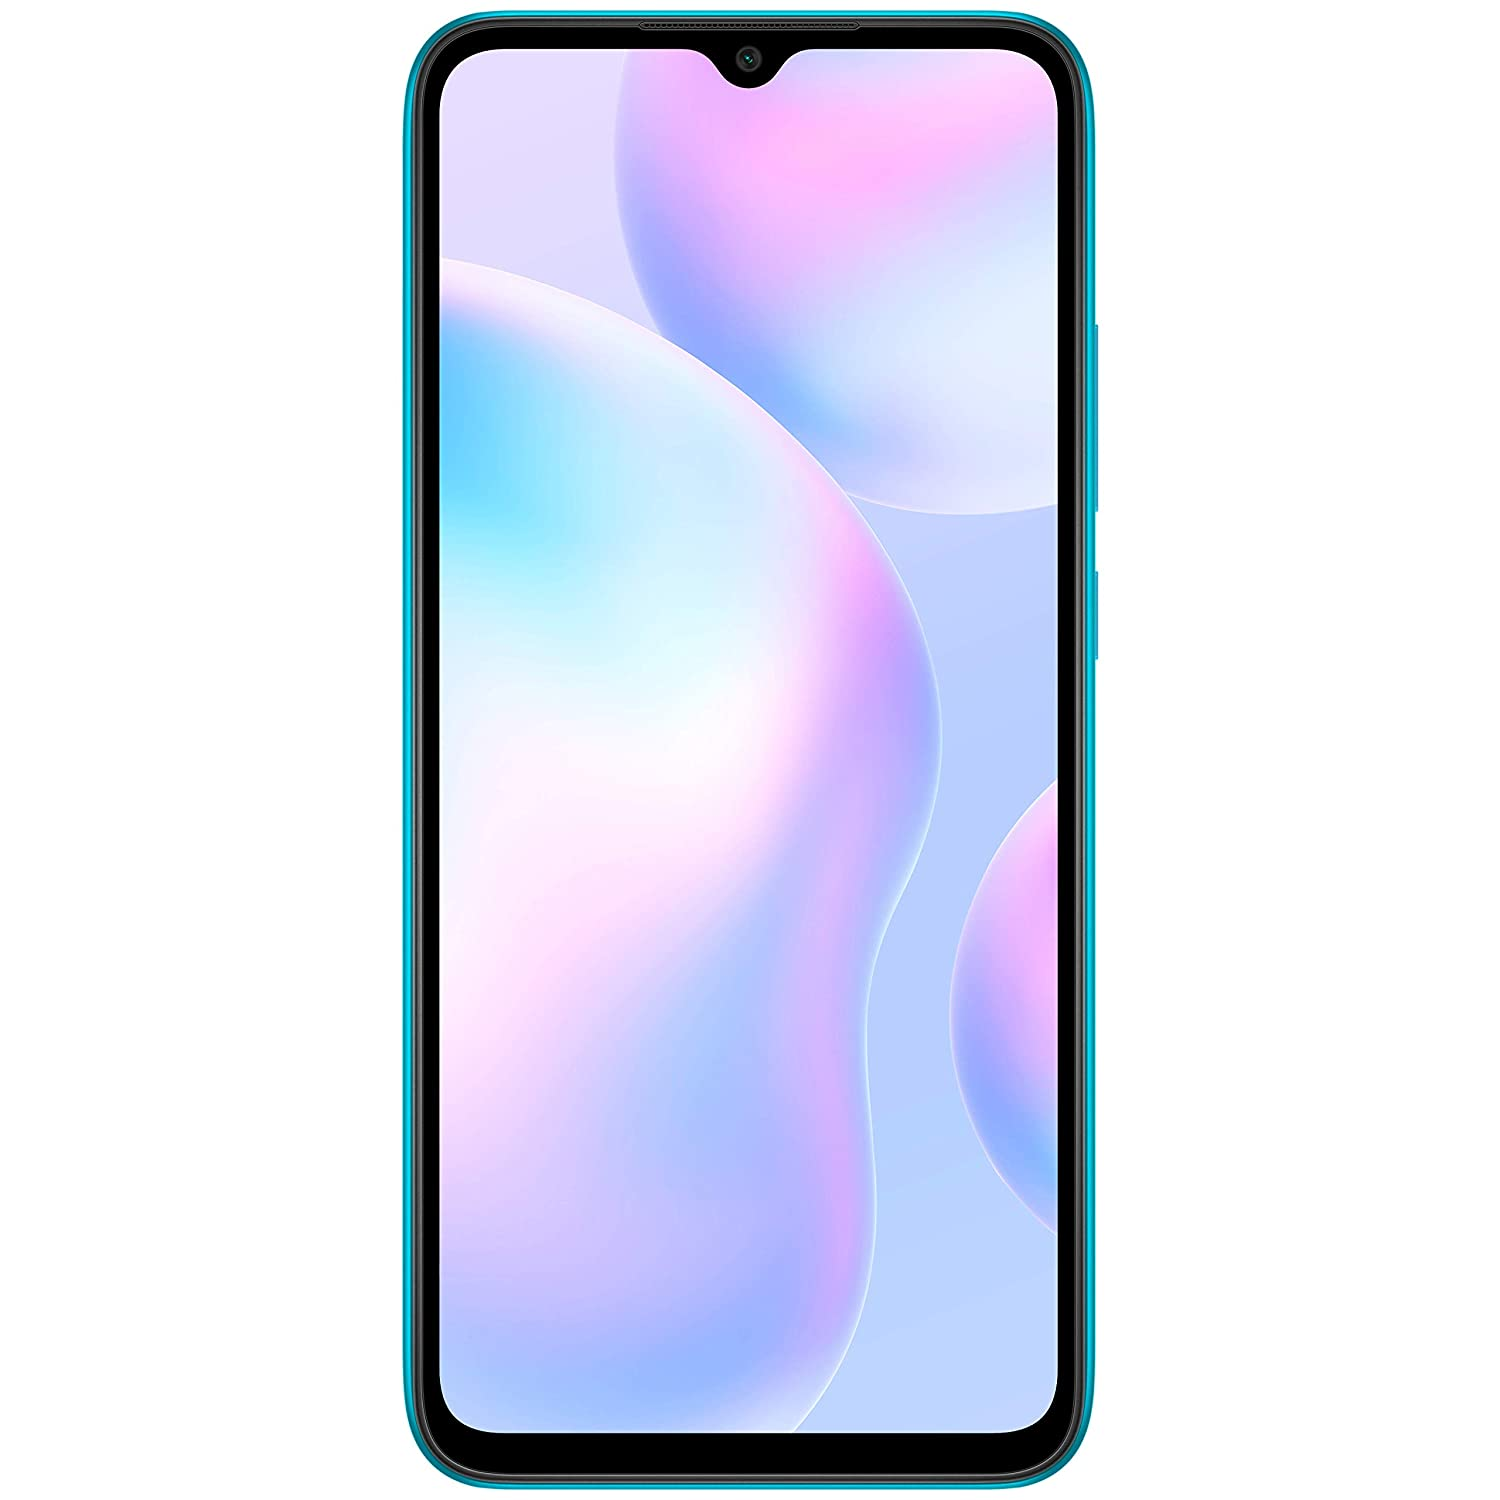 Redmi 9A (Nature Green, 2GB Ram, 32GB Storage)